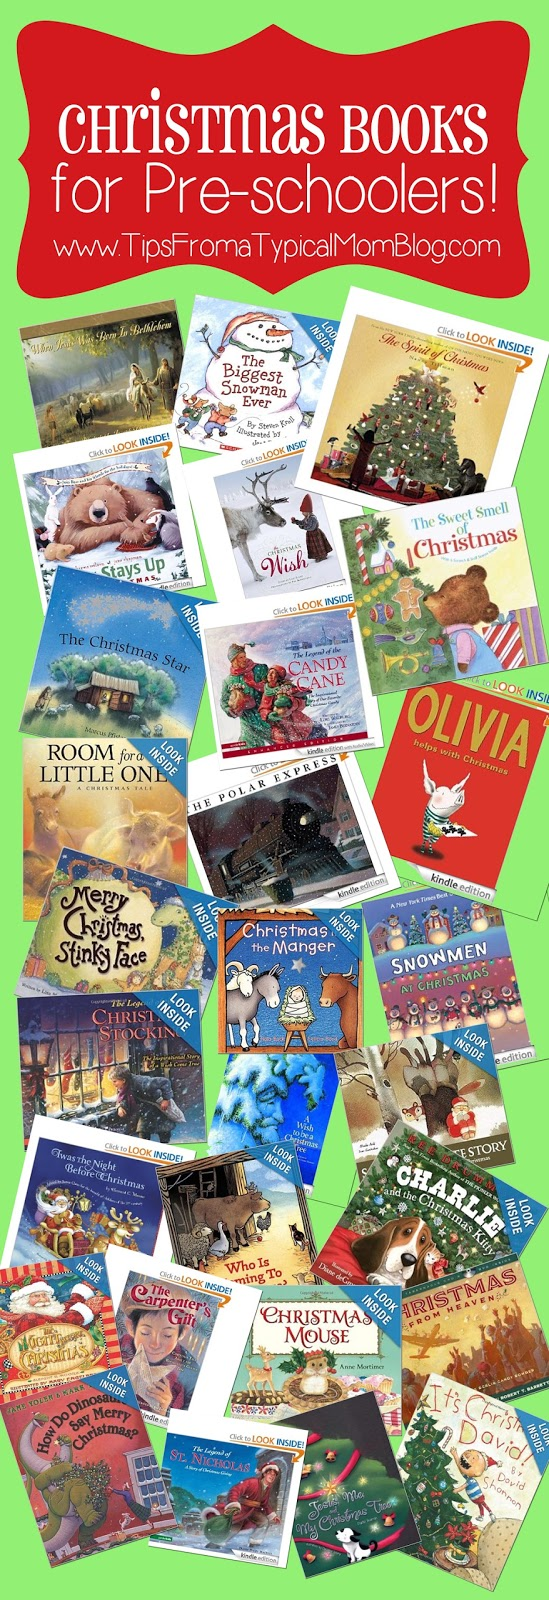 Preschool Christmas Book List - Tips from a Typical Mom